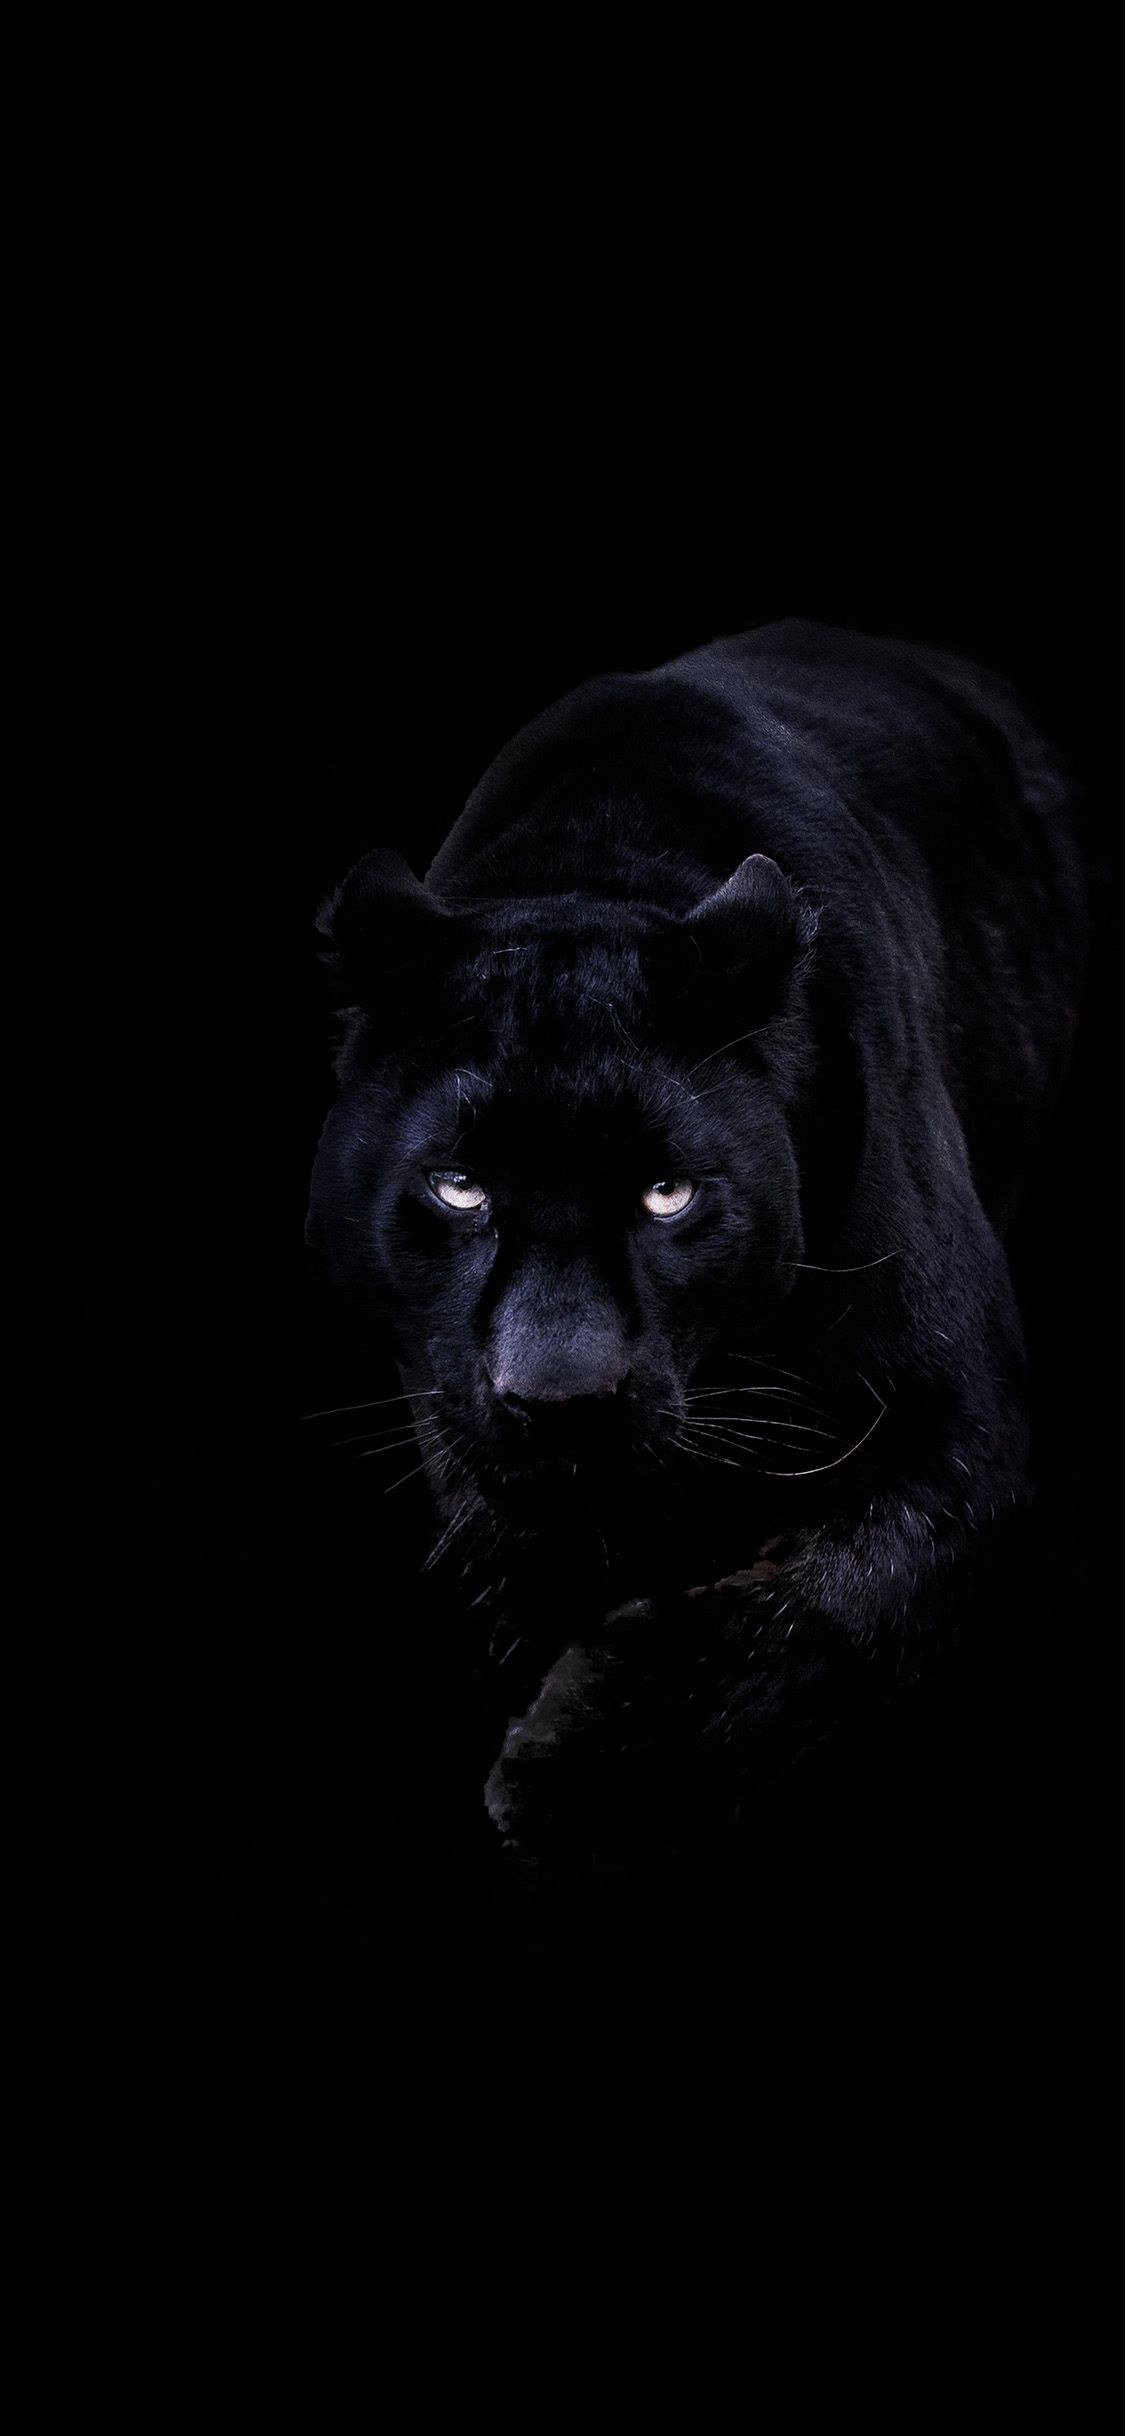 Black Panther Animal Iphone Wallpapers Top Free Black Panther Animal Iphone Backgrounds Wallpaperaccess